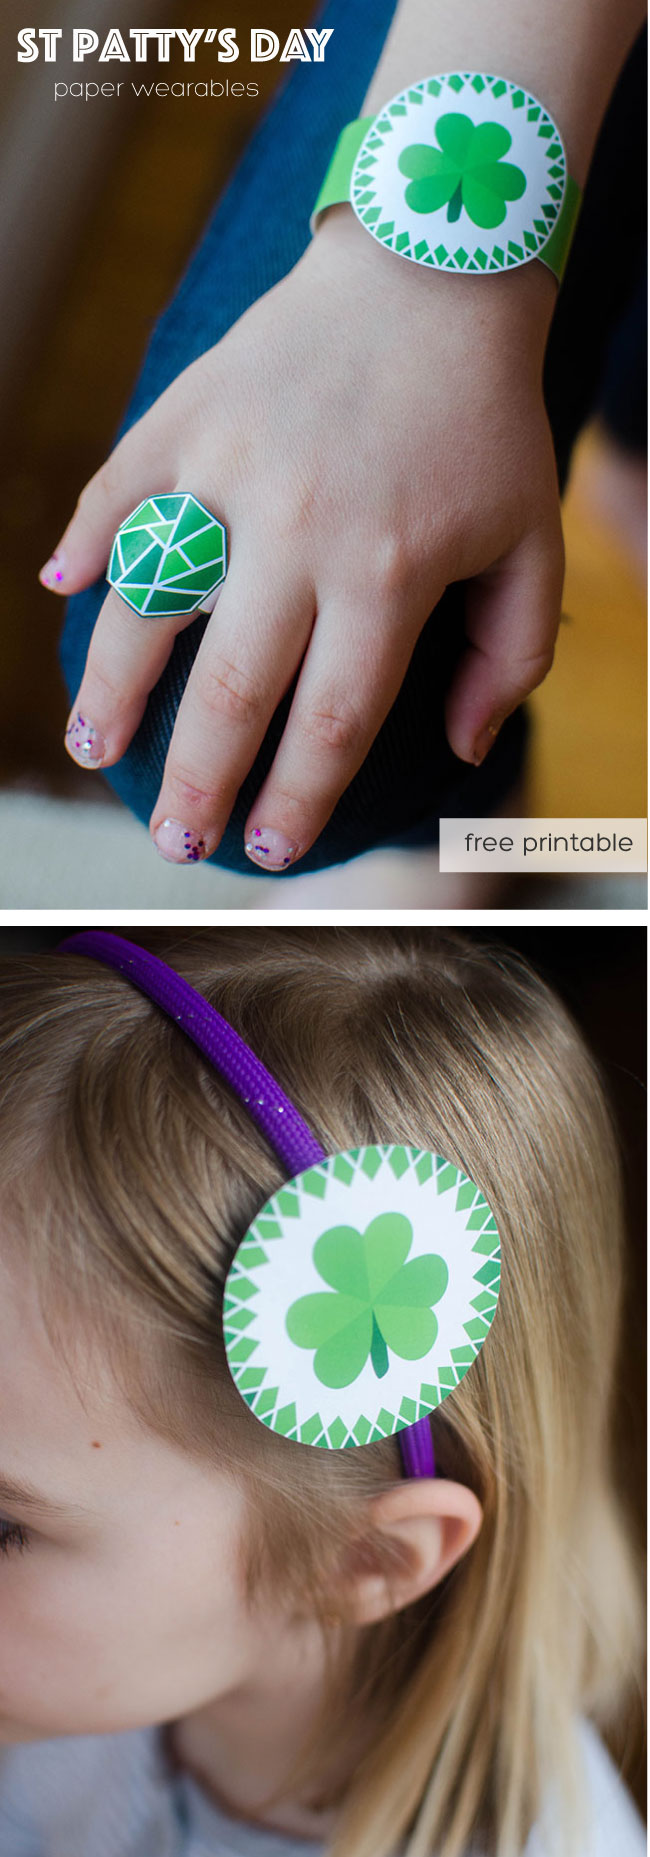 printable paper ring, bracelet and headband fastener for St. patrick's day